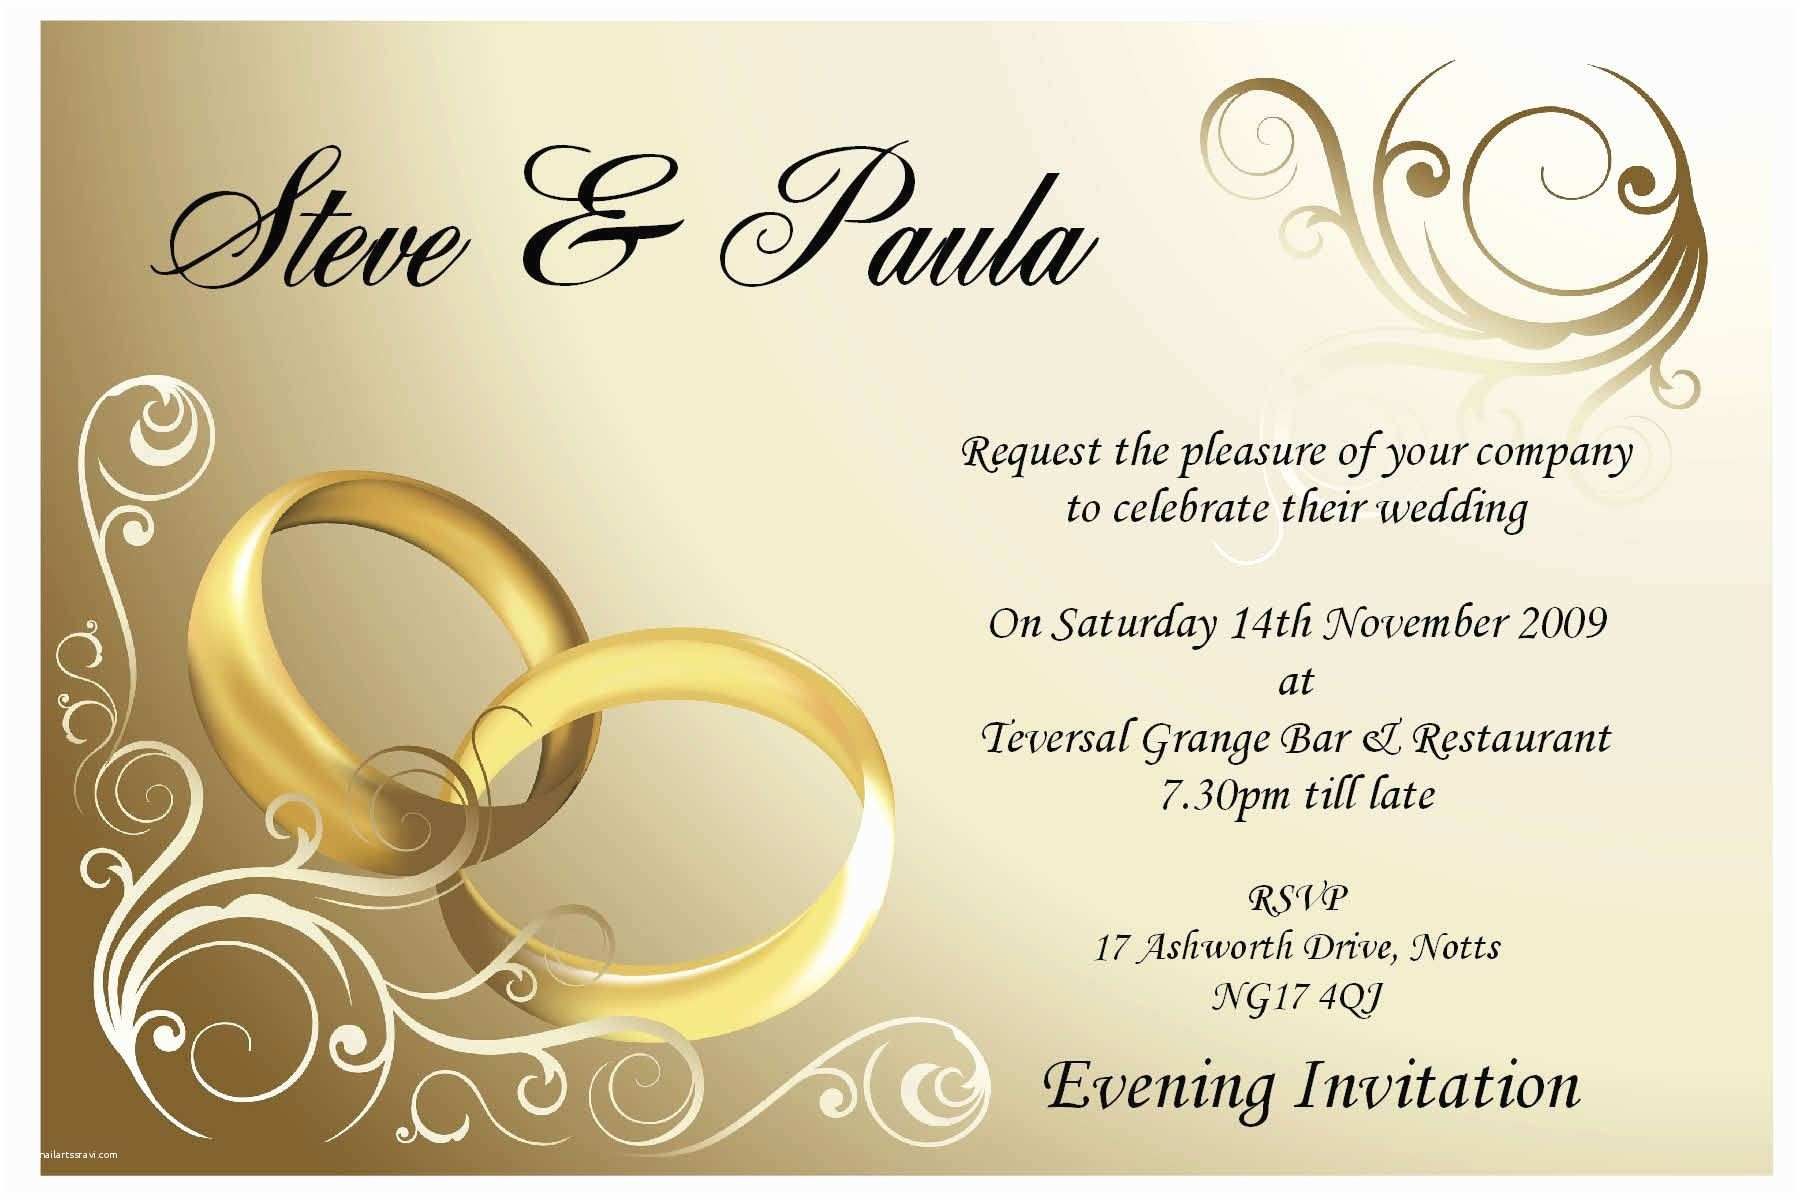 Wedding Invitation Examples Wedding Invitation Sample Wedding Invitation Card New